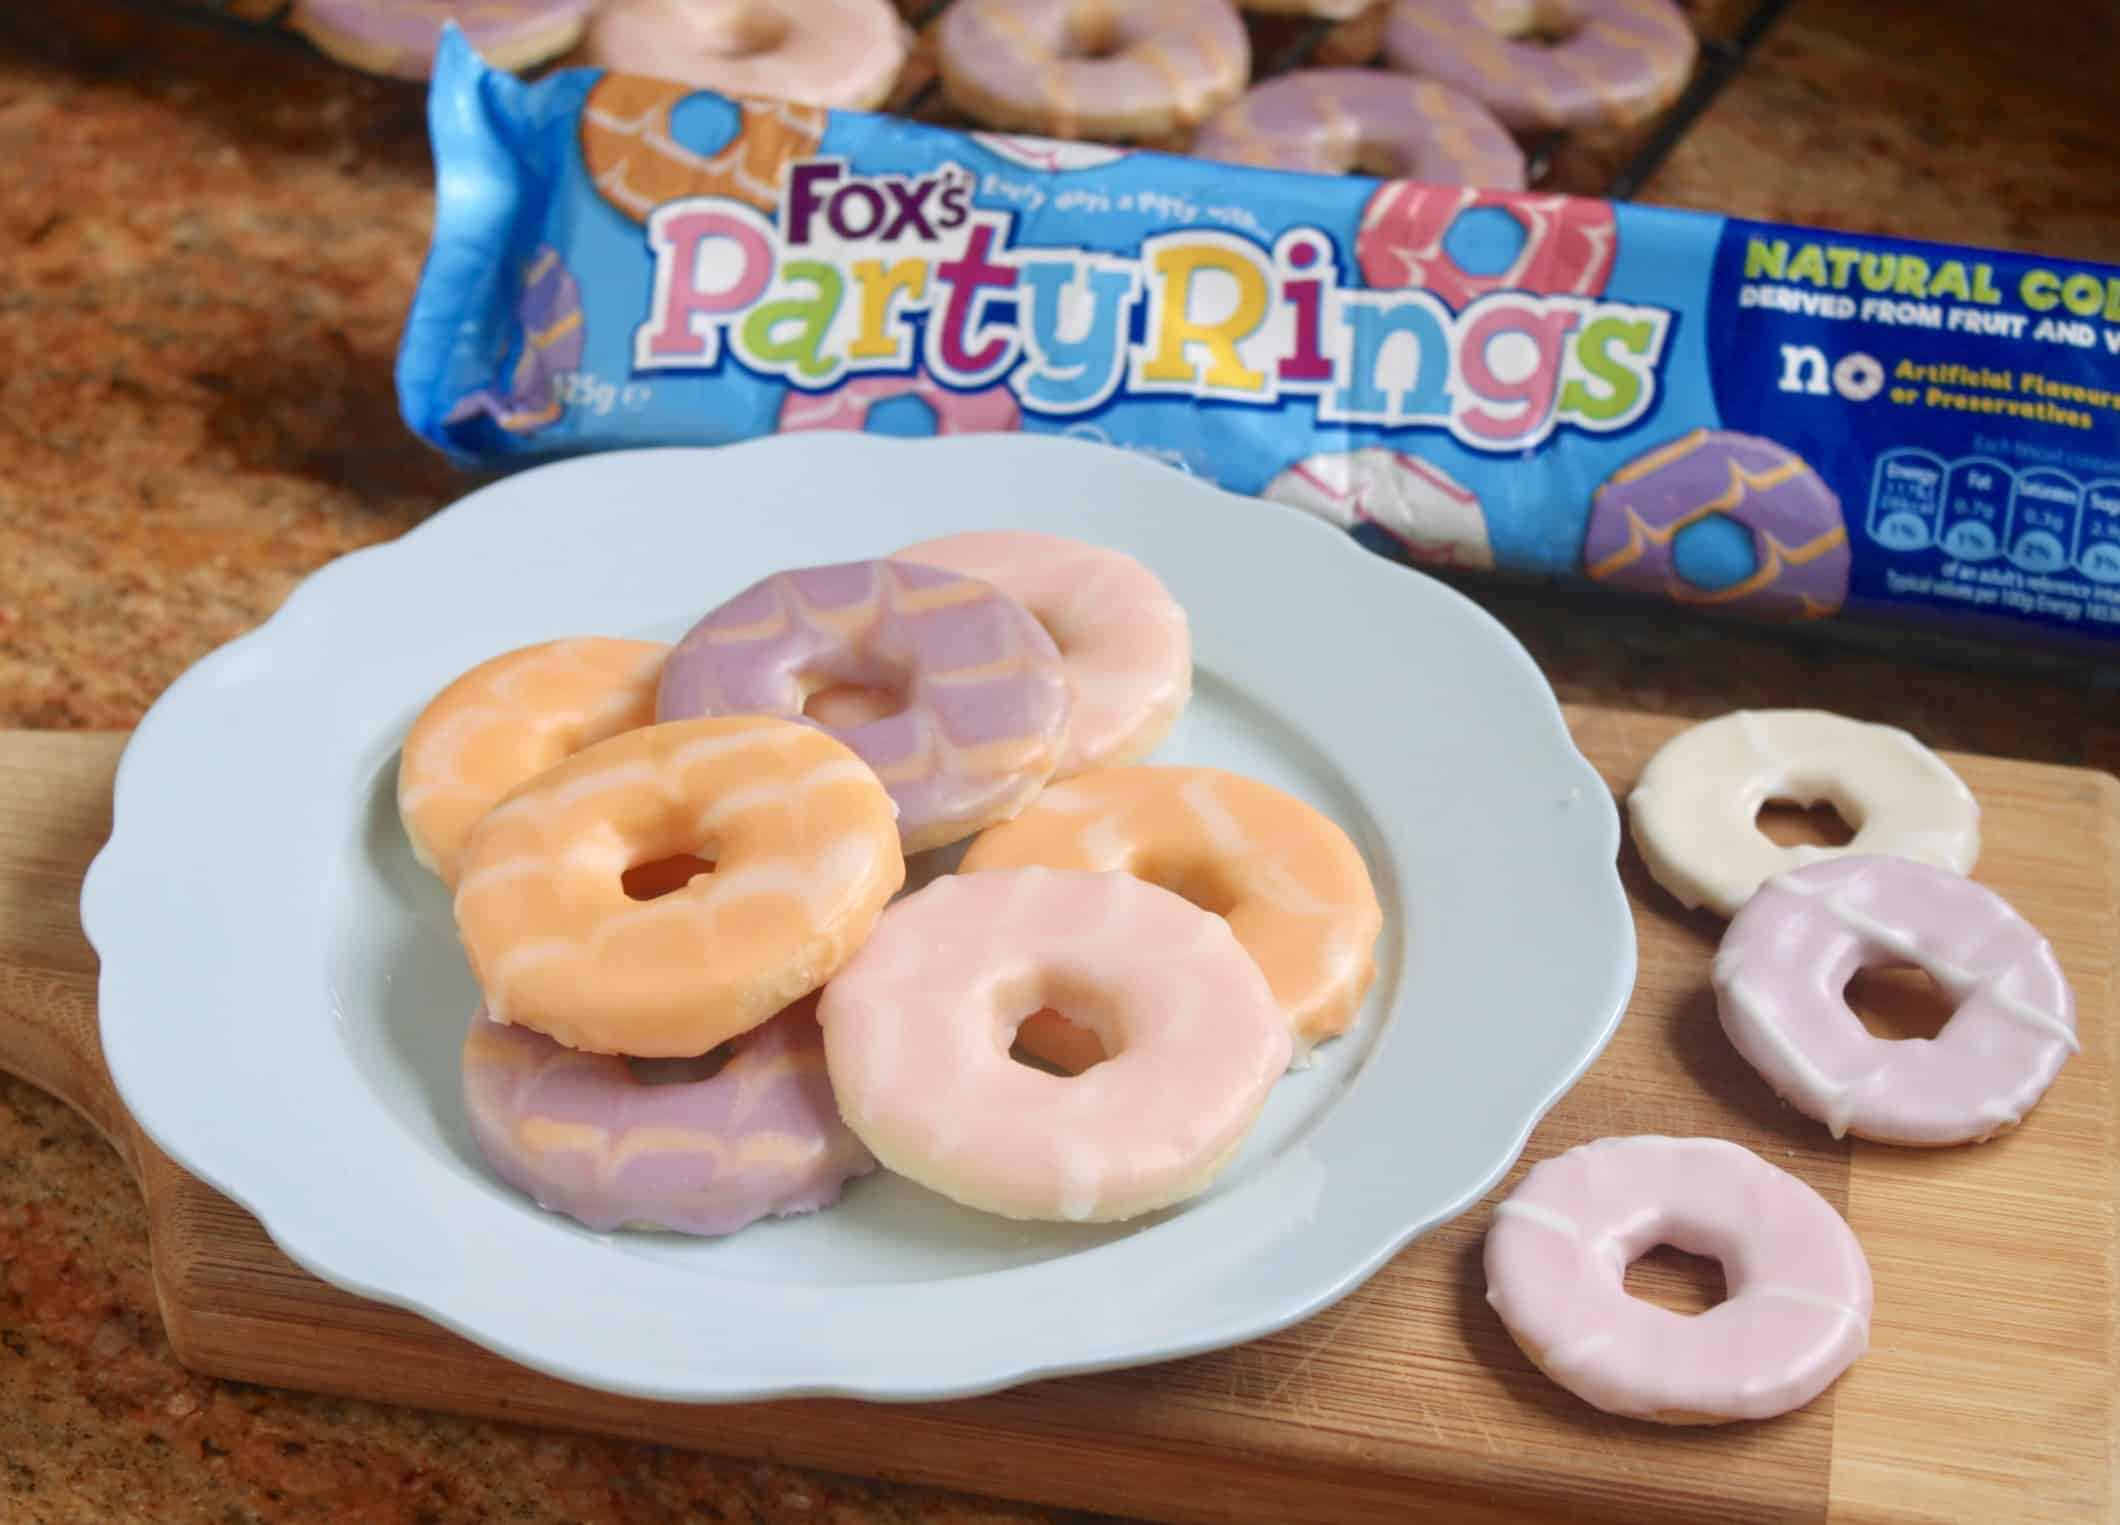 Homemade party rings on a plate